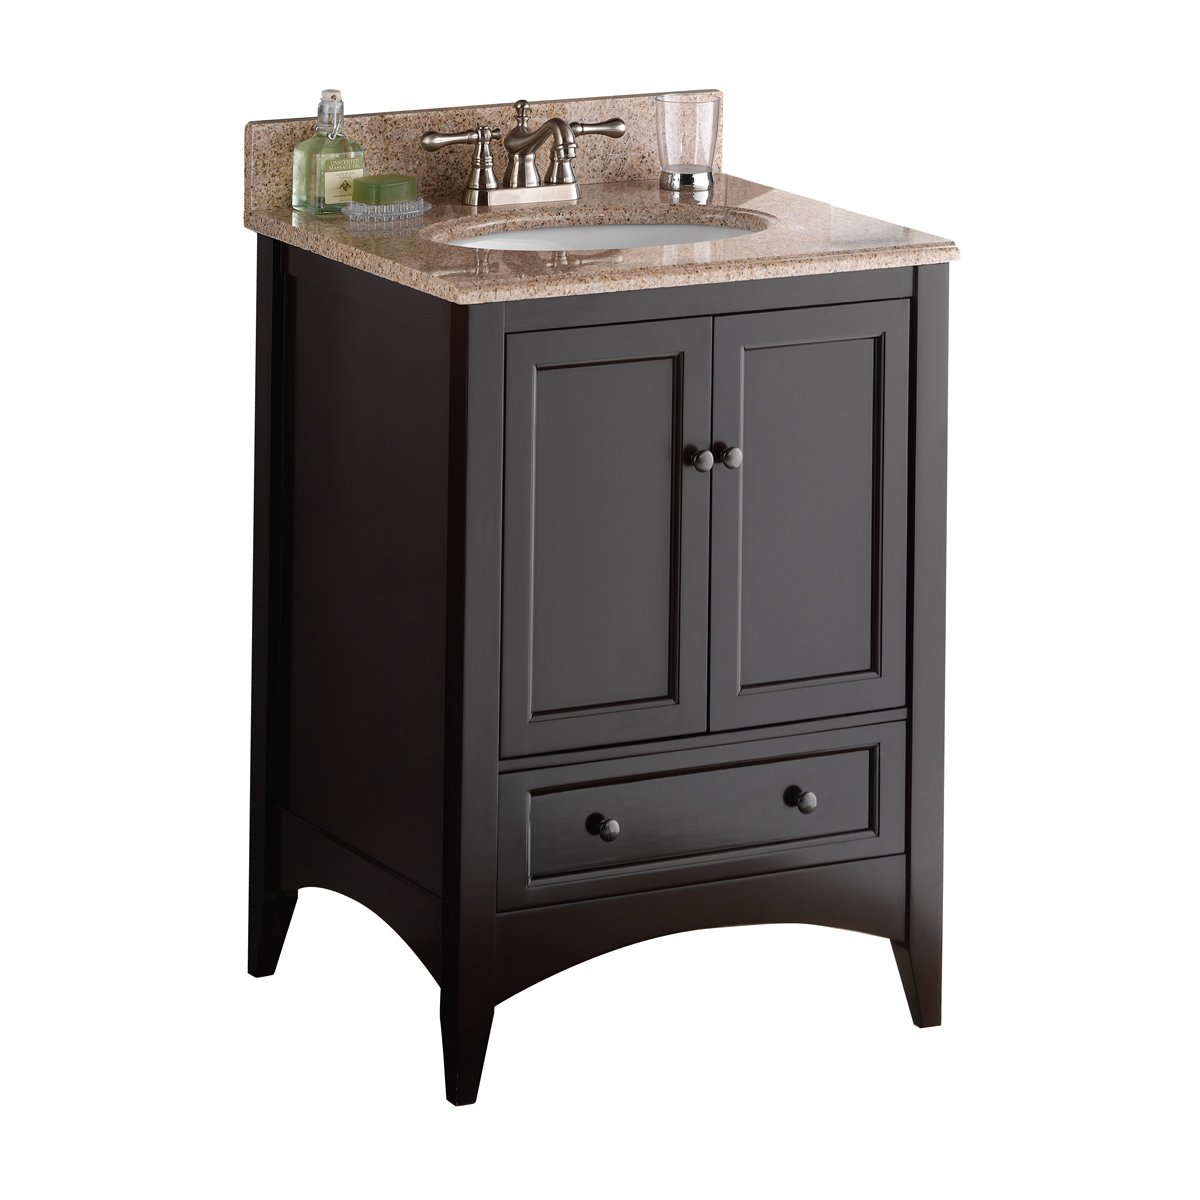 Amazon com  Foremost BECA2421D Berkshire 24 Inch Espresso Bathroom Vanity  Home Improvement. Amazon com  Foremost BECA2421D Berkshire 24 Inch Espresso Bathroom